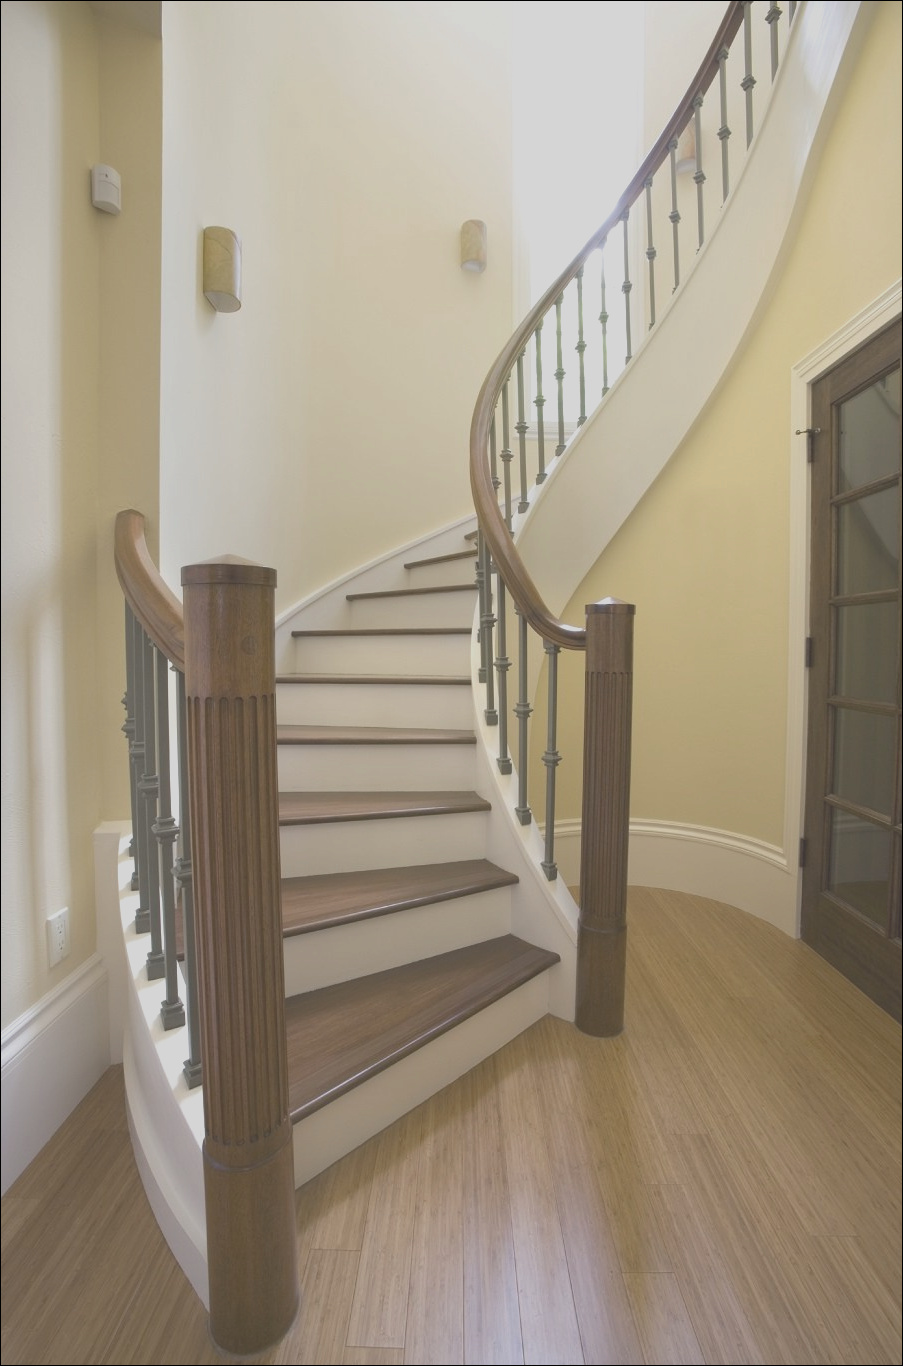 colors no slip tapes indoor stairs